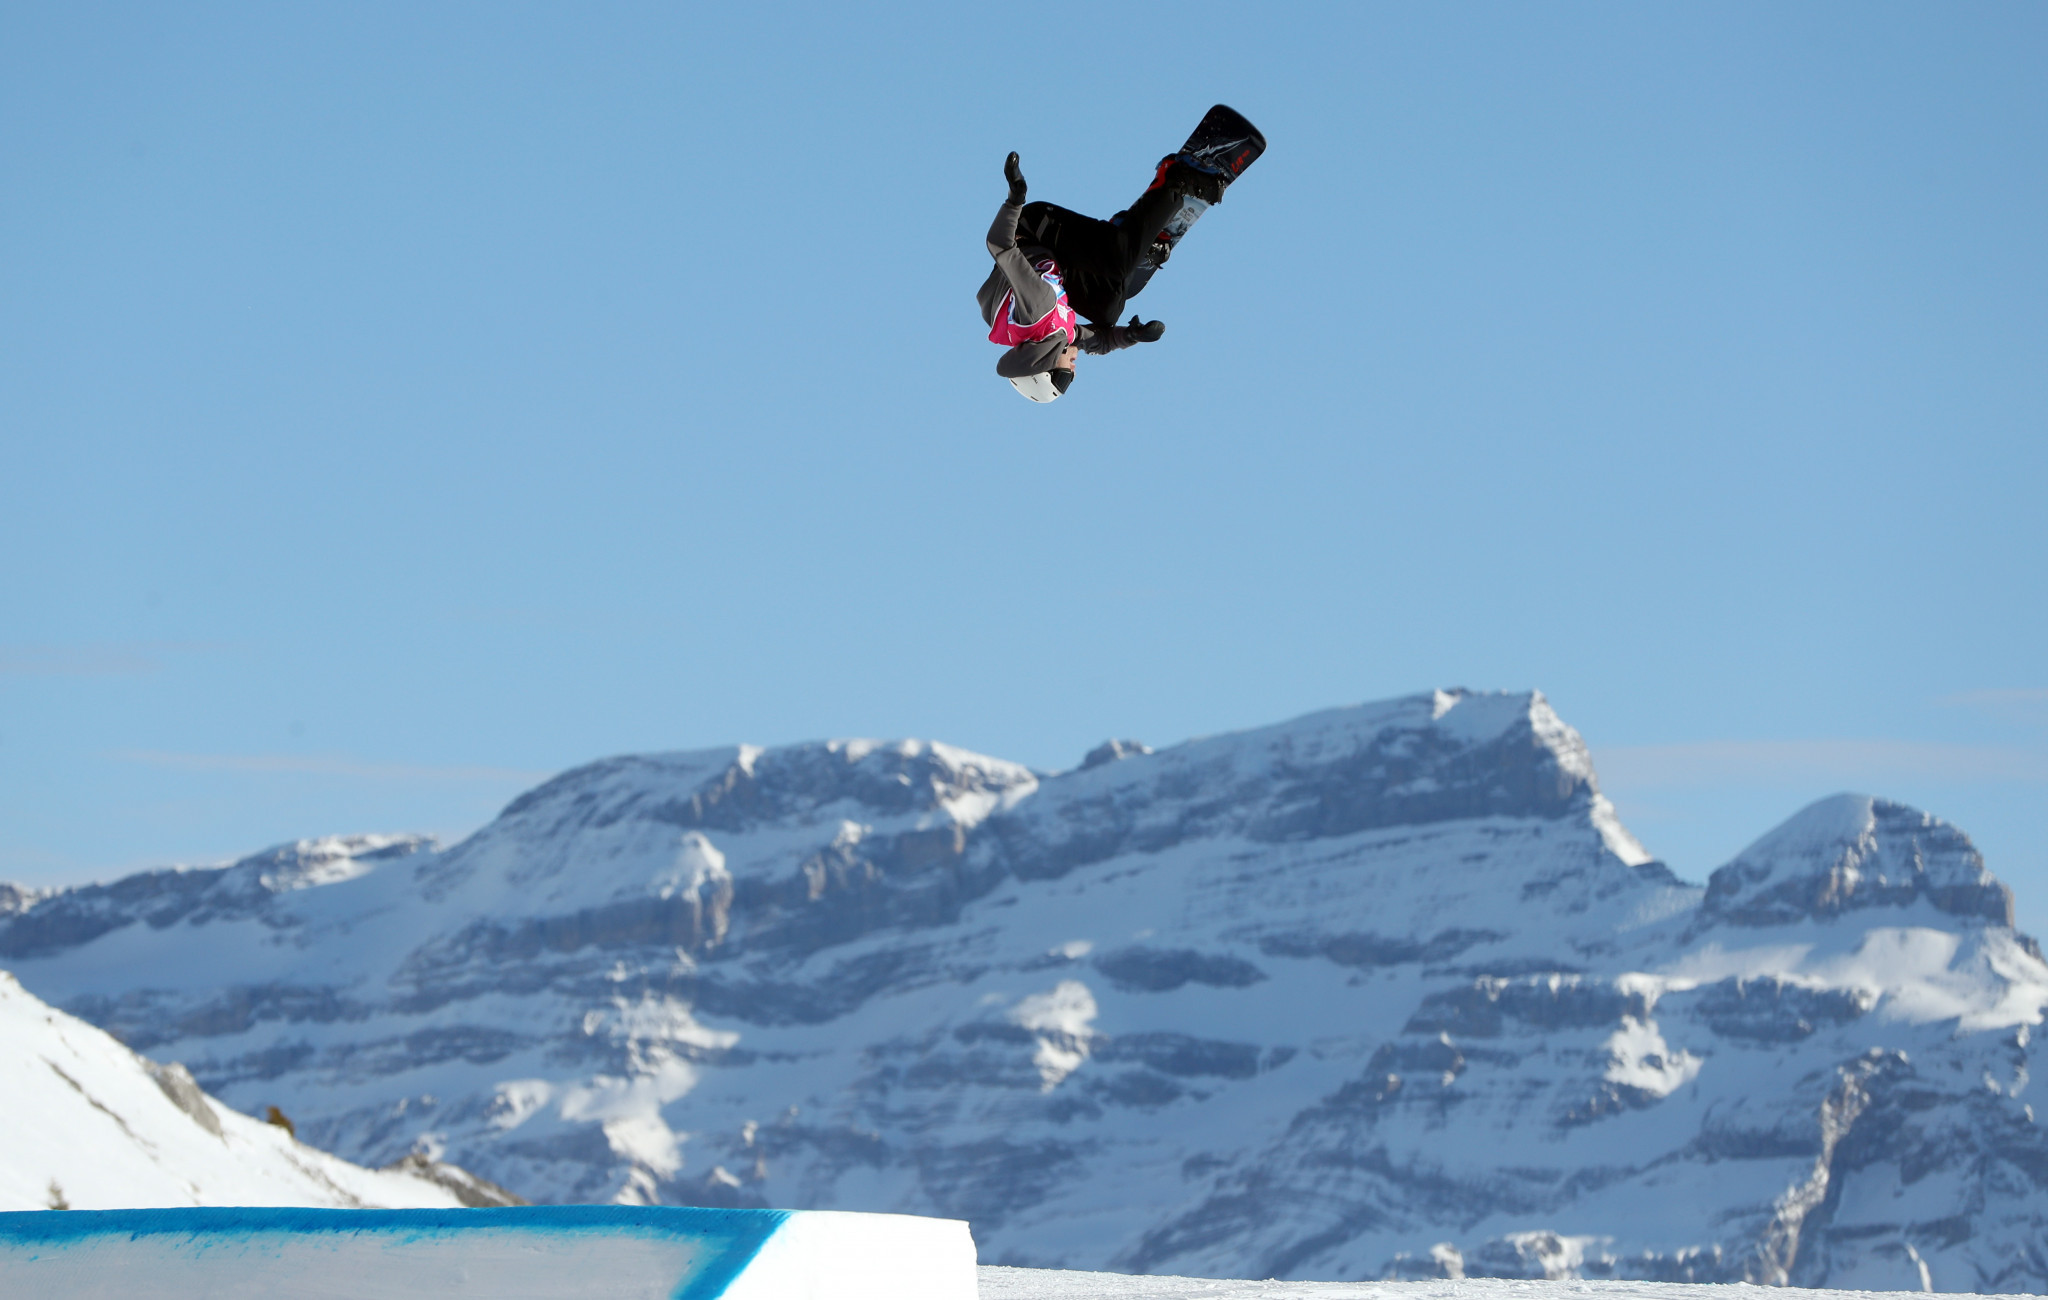 Snowboard stars crowned on busiest competition day at Lausanne 2020